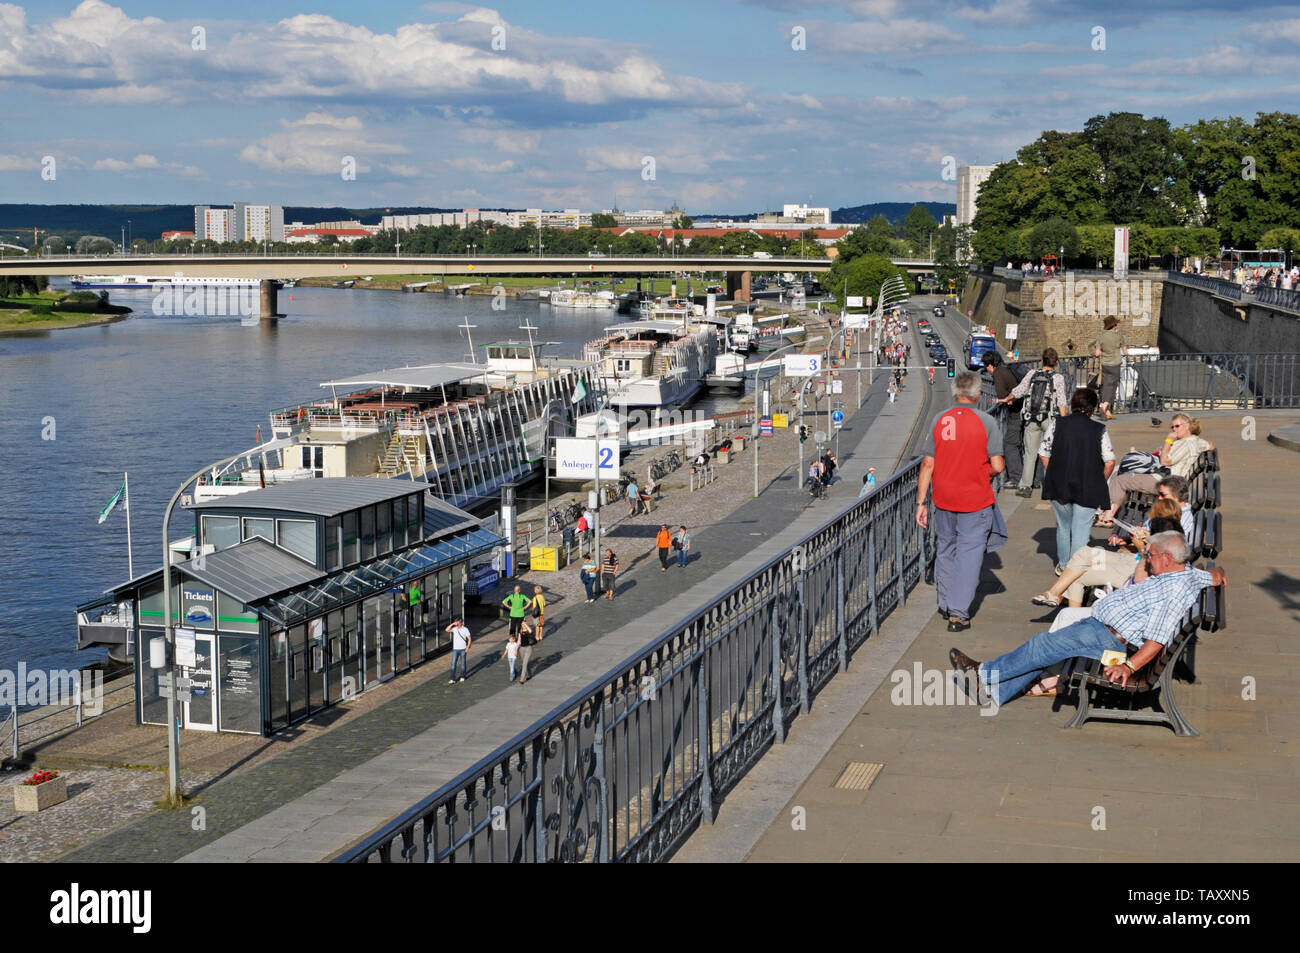 people on benches at Bruehl's Terrace over Terrassenufer waterfront, Dresden, Germany Stock Photo